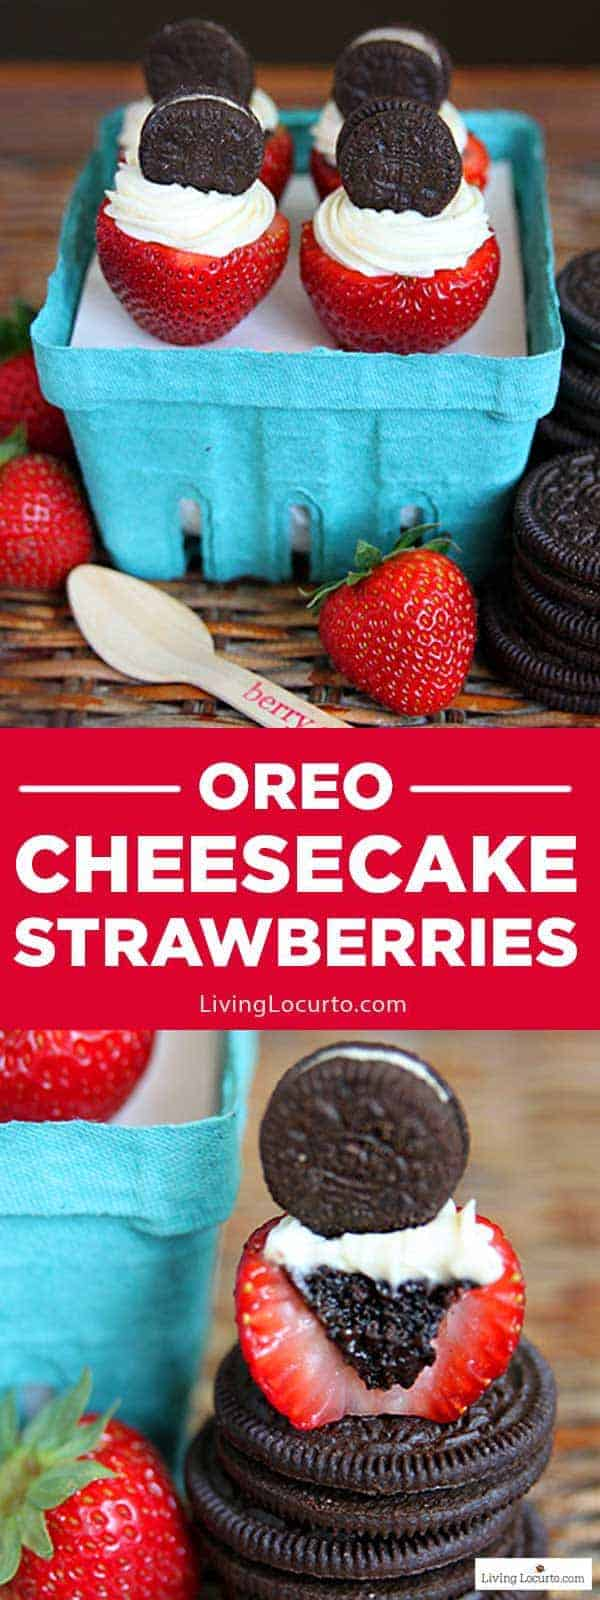 OREO Cheesecake Stuffed Strawberries are the best of strawberries and OREO cheesecake in one fabulous bite! Easy no-bake chocolate strawberry dessert is a perfect bite sized recipe for any party. LivingLocurto.com